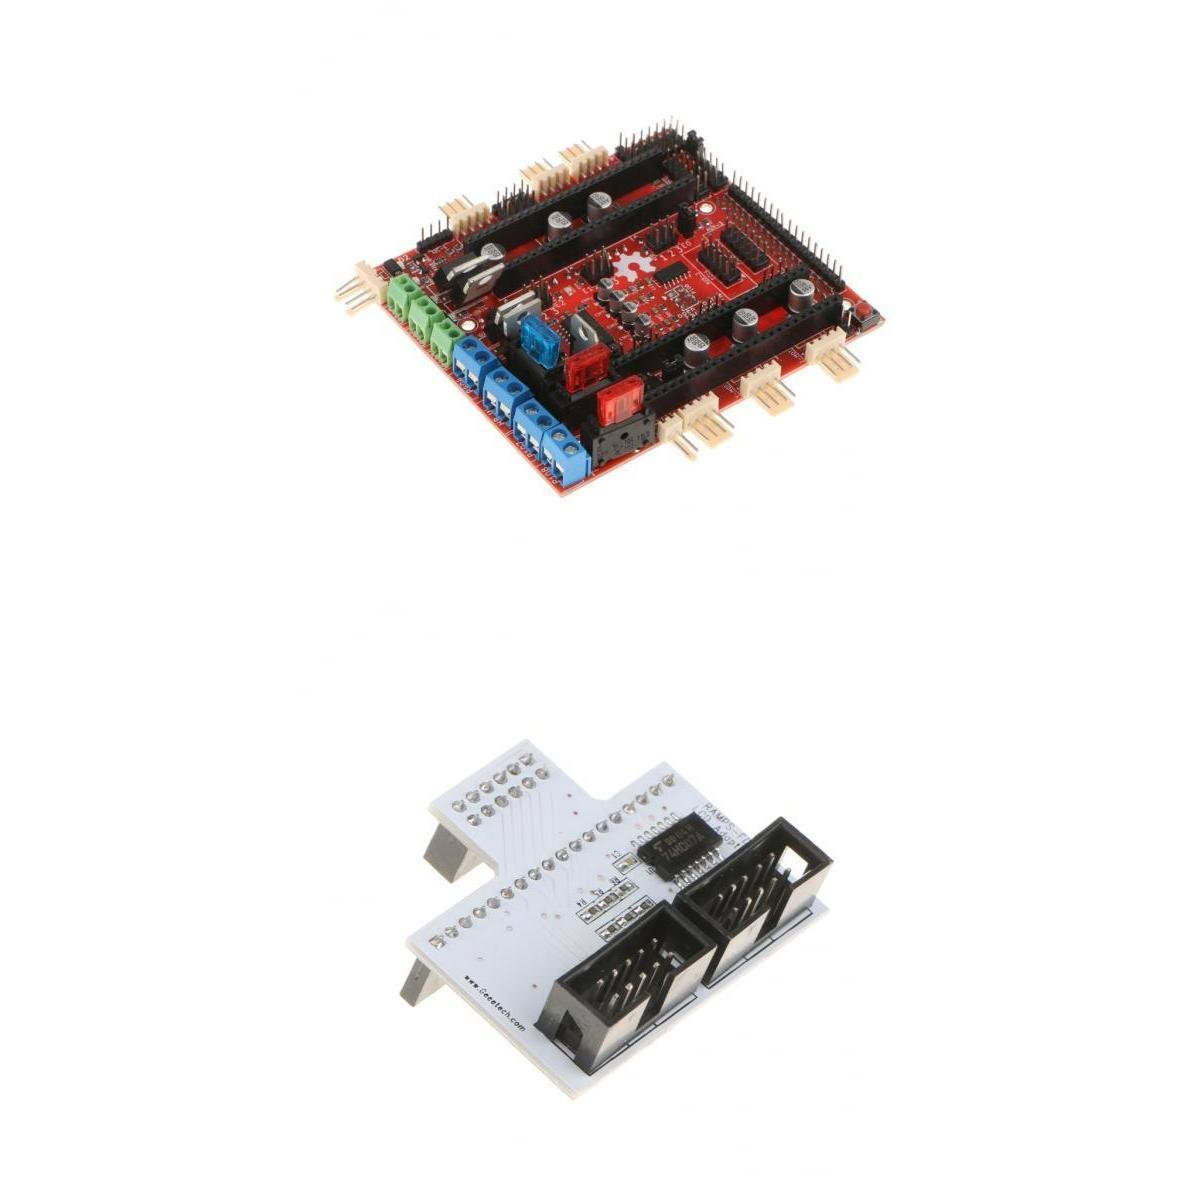 3D Printer LCD Panel Adapter wtih Ramps-FD Expansion board for Adruino DUE